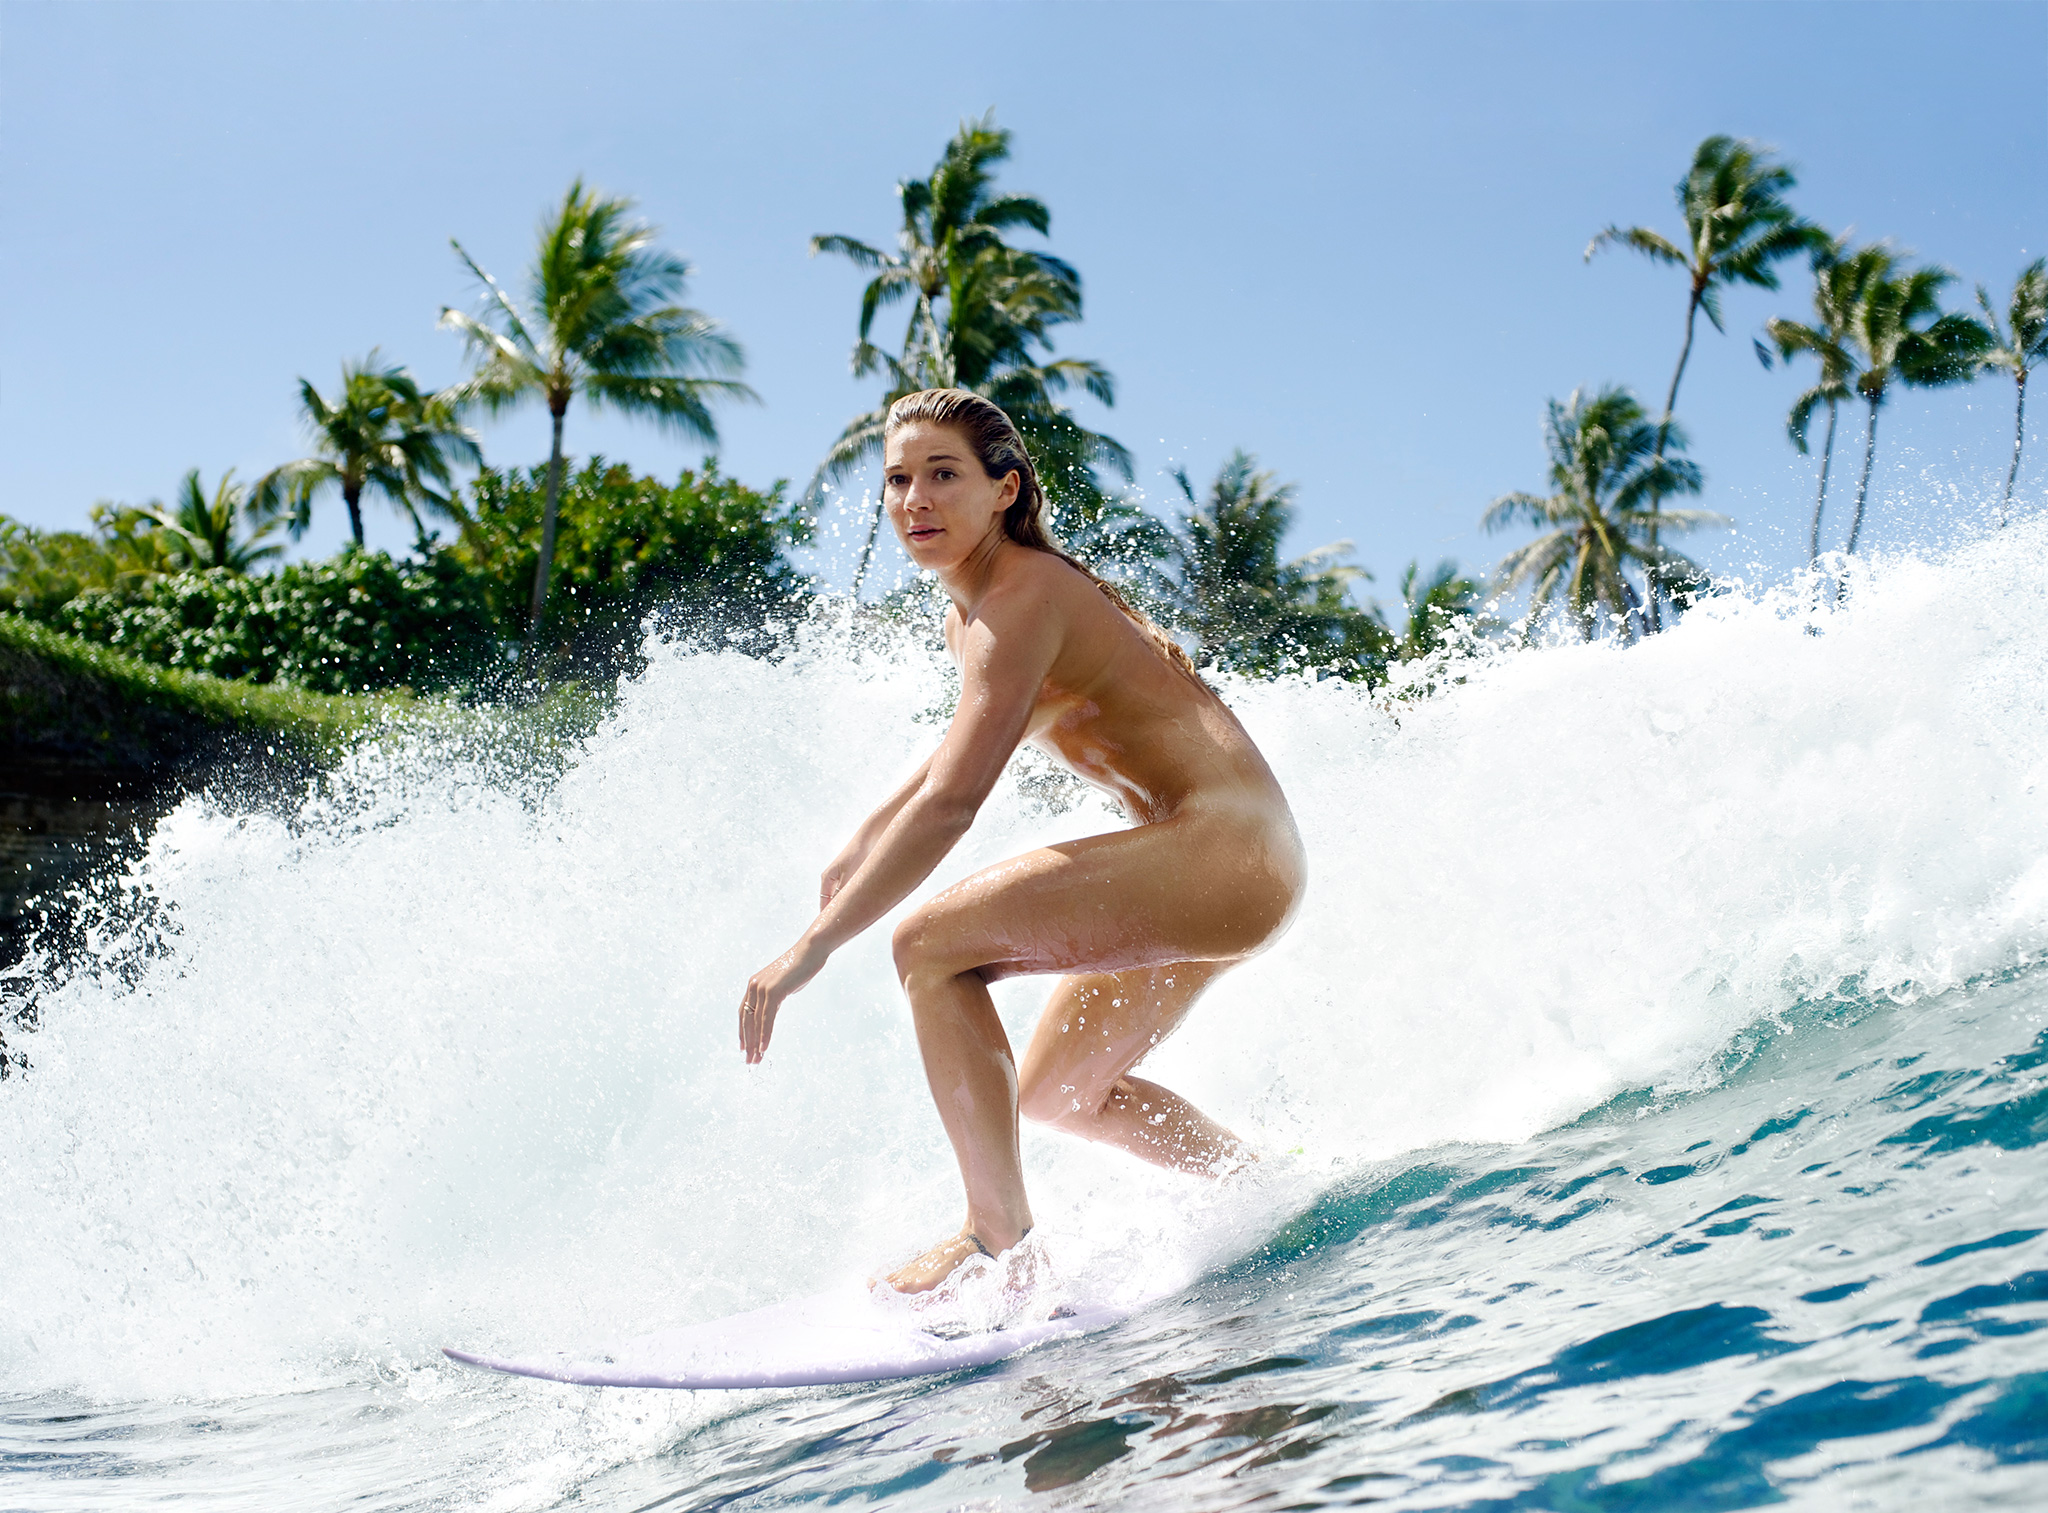 Coco Ho, Coco Ho Nude, ESPN Body Issue 2014, The Bodies We Want 2014